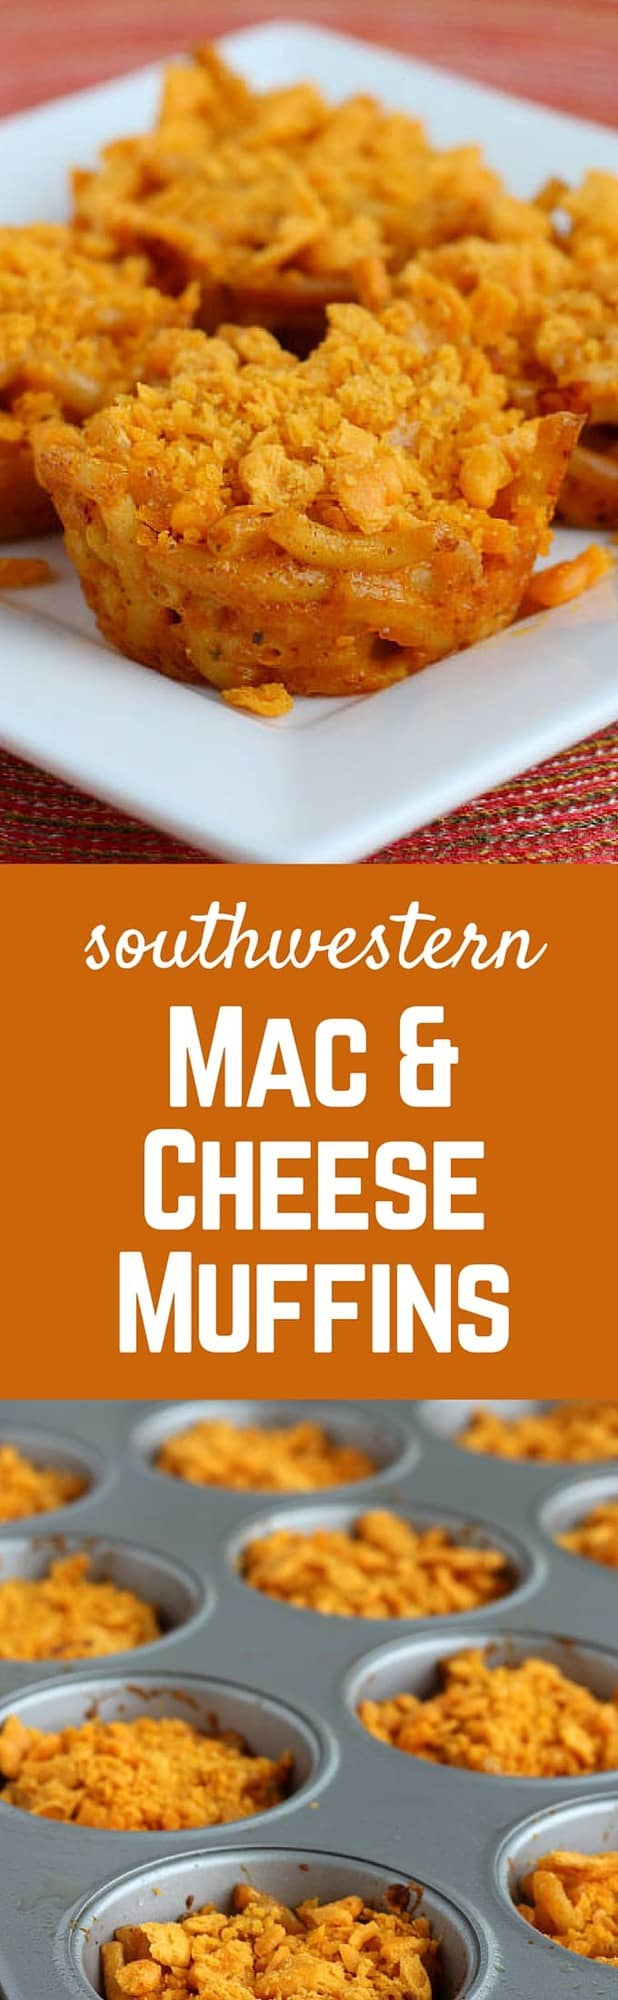 These southwestern mac & cheese muffins will be loved by both your buddies & your toddler. These